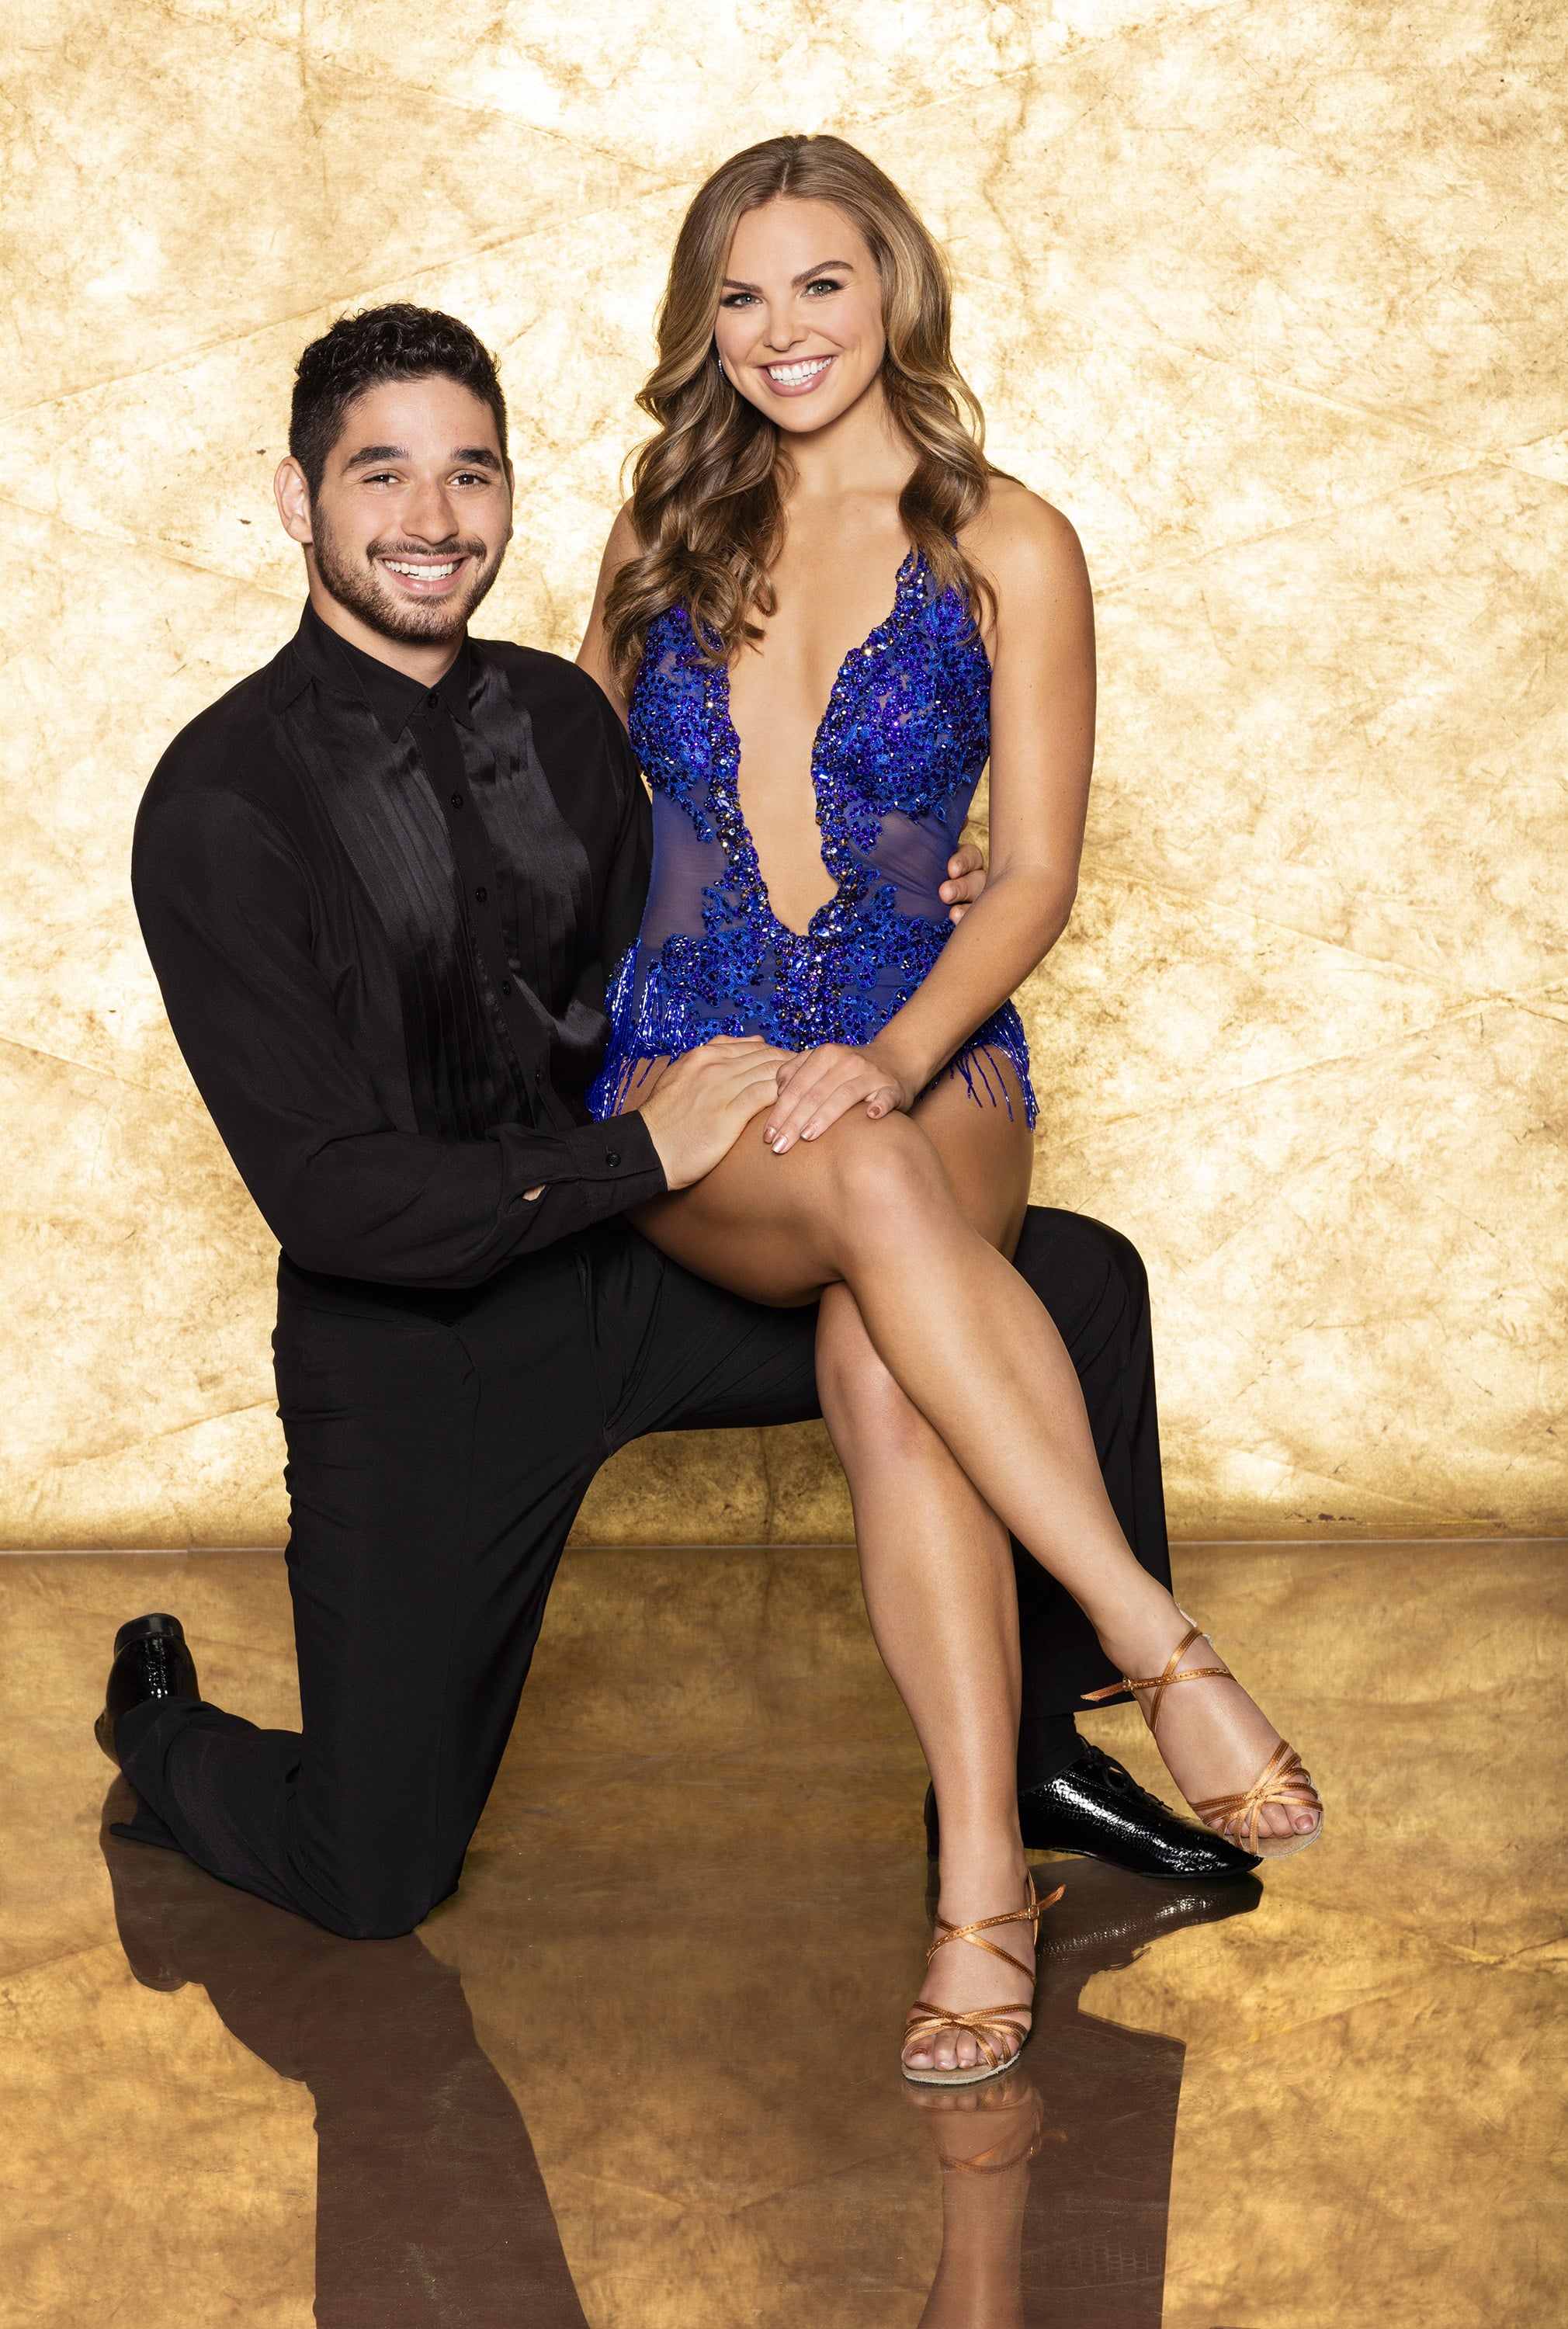 DANCING WITH THE STARS - With a lineup of celebrities including a supermodel, a former White House press secretary, a Bachelorette, pro-athletes from the NFL and NBA, a Supreme and a TV icon to name a few,